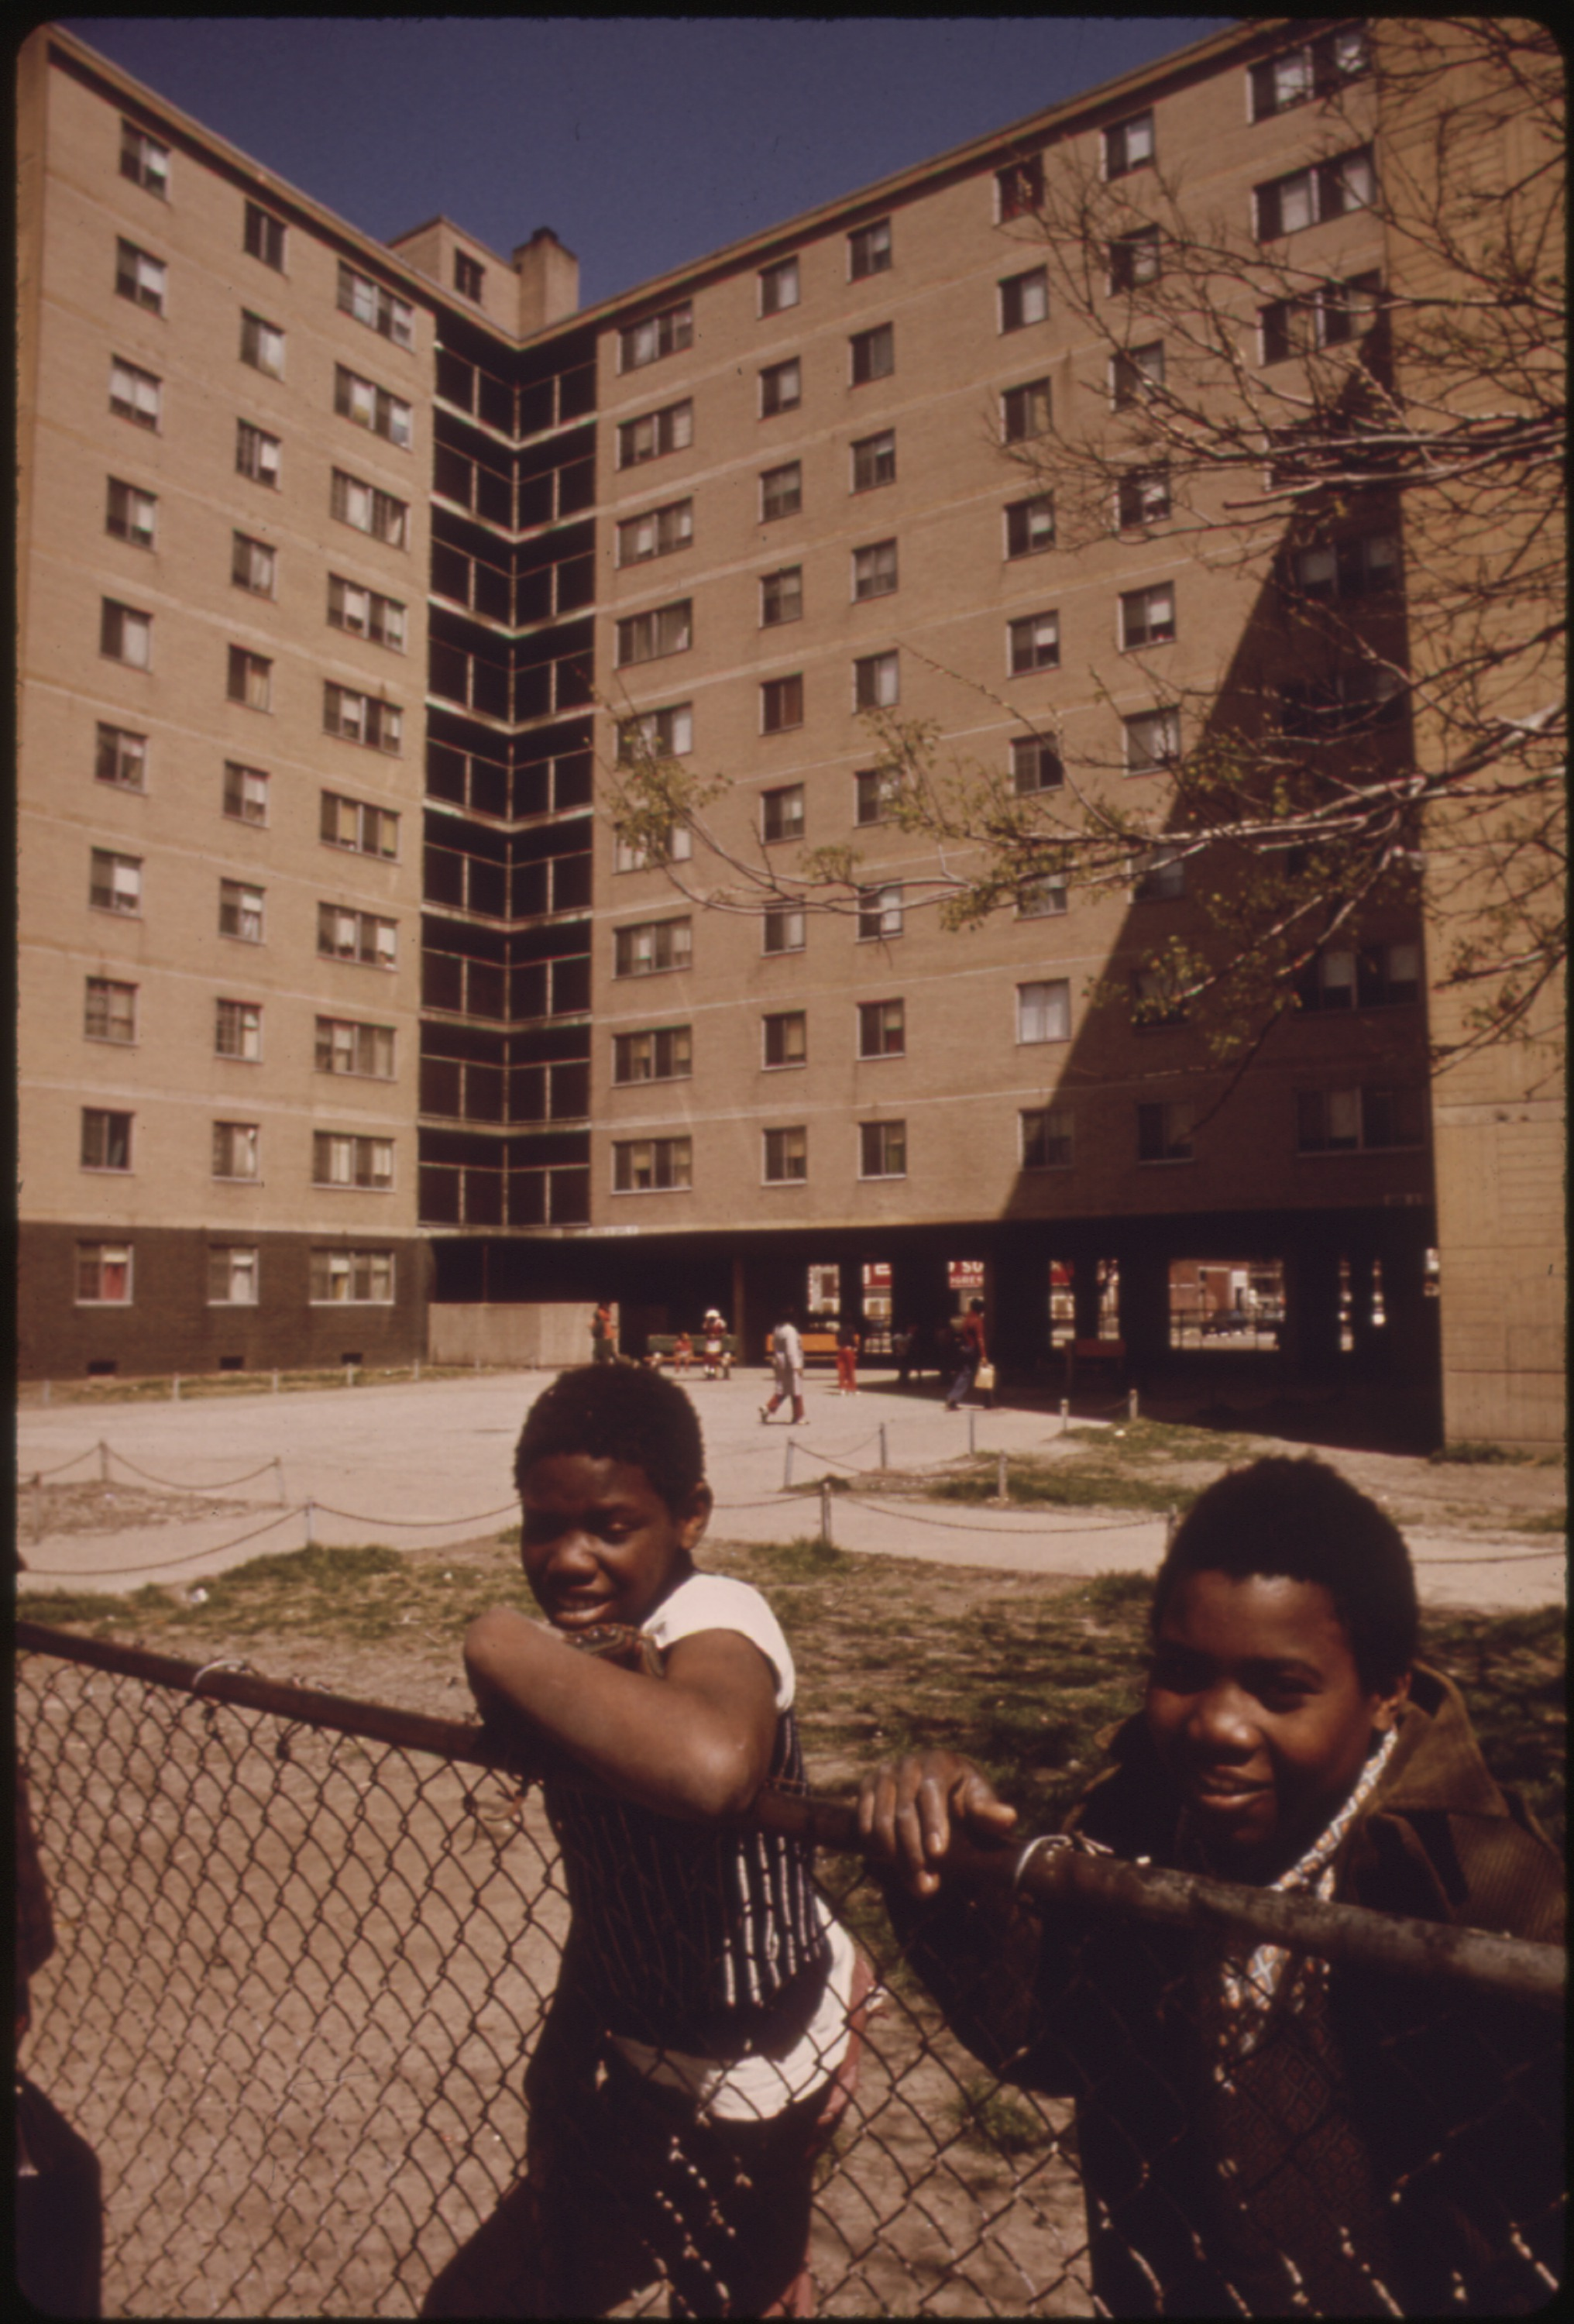 ... ON CHICAGO'S SOUTH SIDE. THE COMPLEX HAS EIGHT... - NARA - 556163.jpg